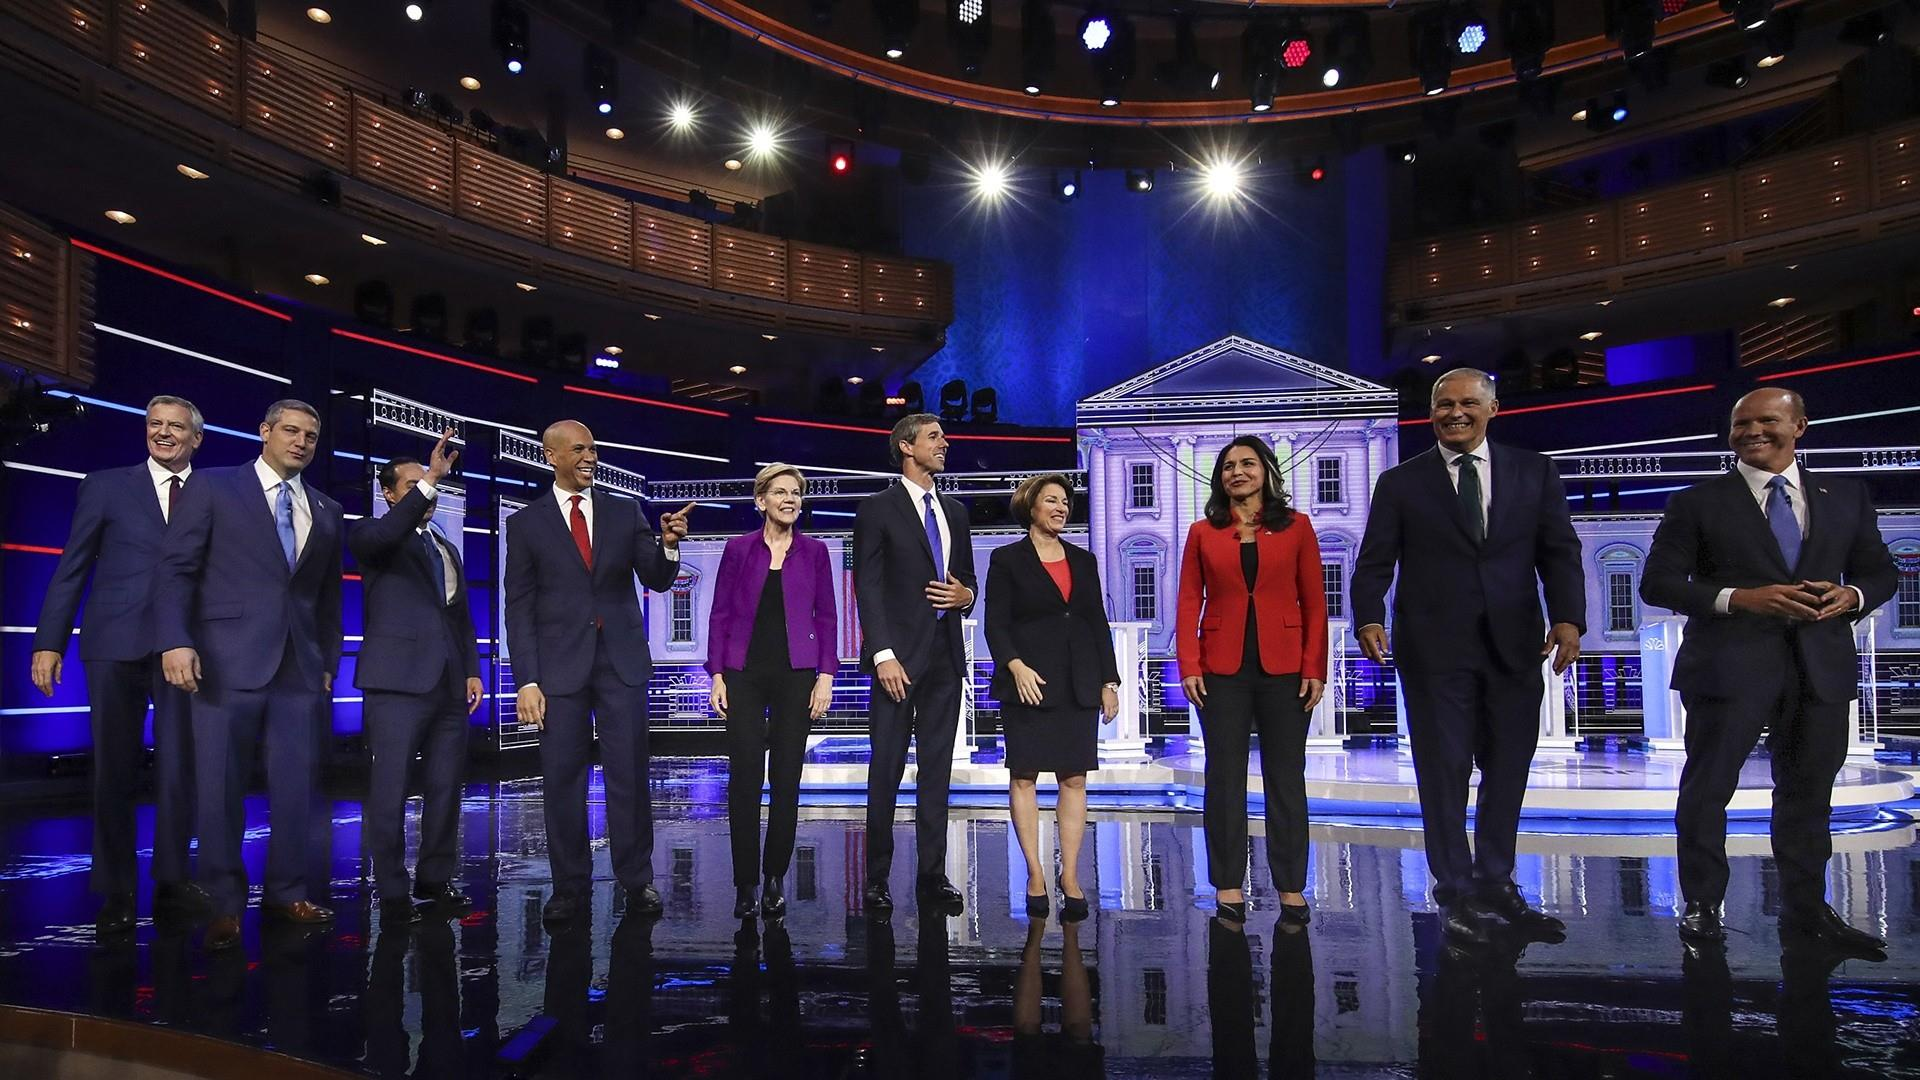 See highlights from the 1st Democratic primary debate